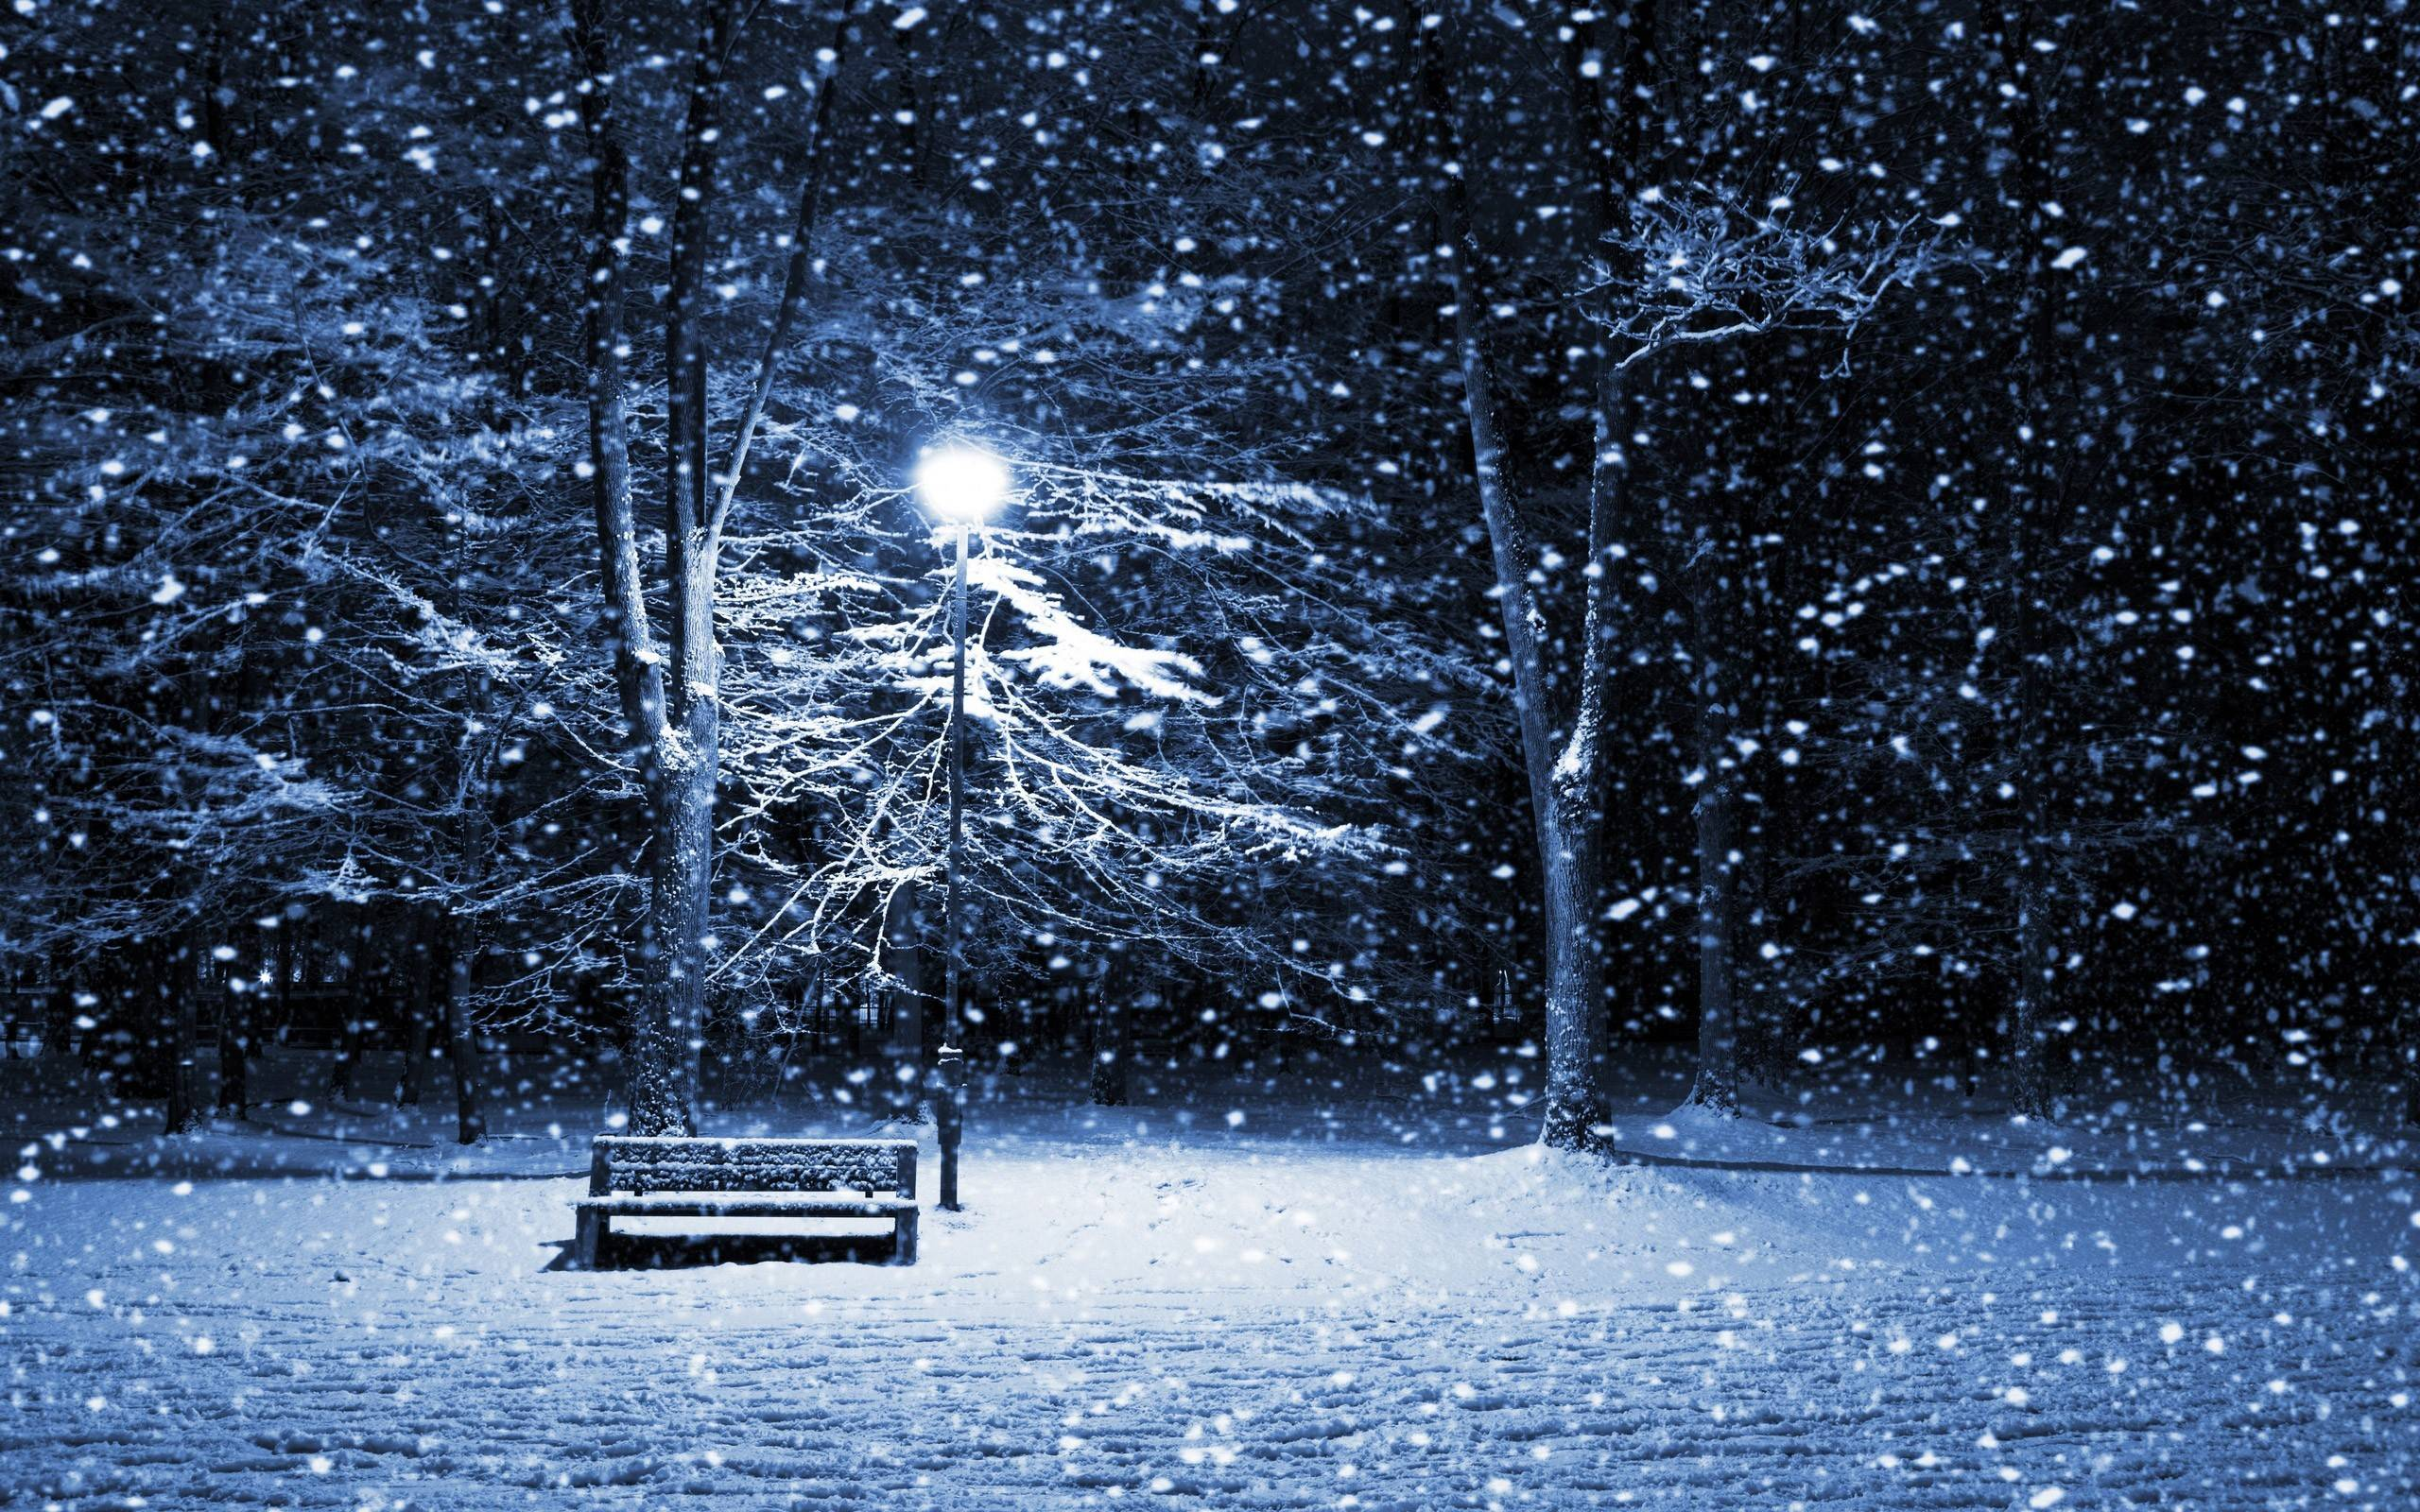 Falling Snow Wallpaper For Desktop, Falling Snow Wallpapers (43+)